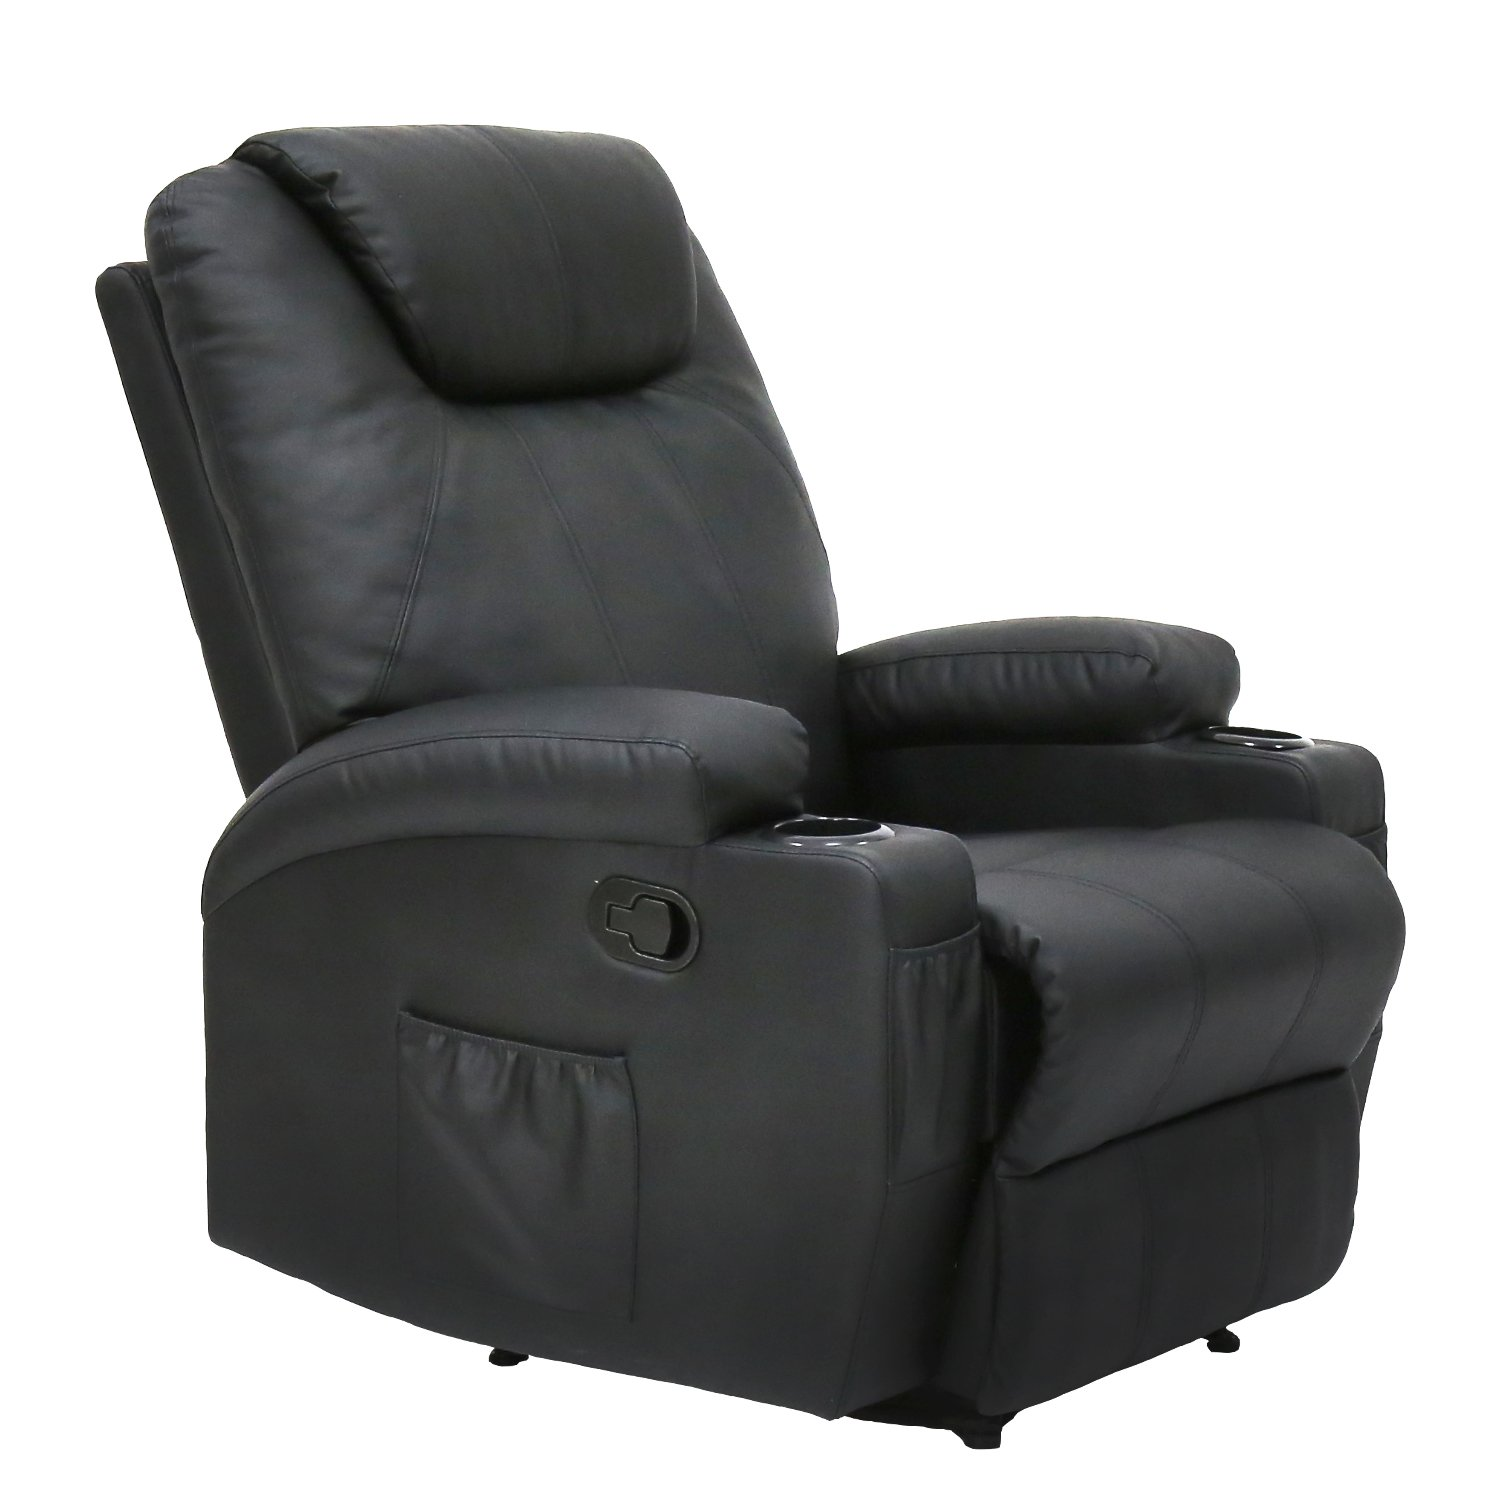 Kinbor Massage Recliner Leather Sofa Chair Ergonomic Lounge Swivel Heated with Control and Cup Holder (black)